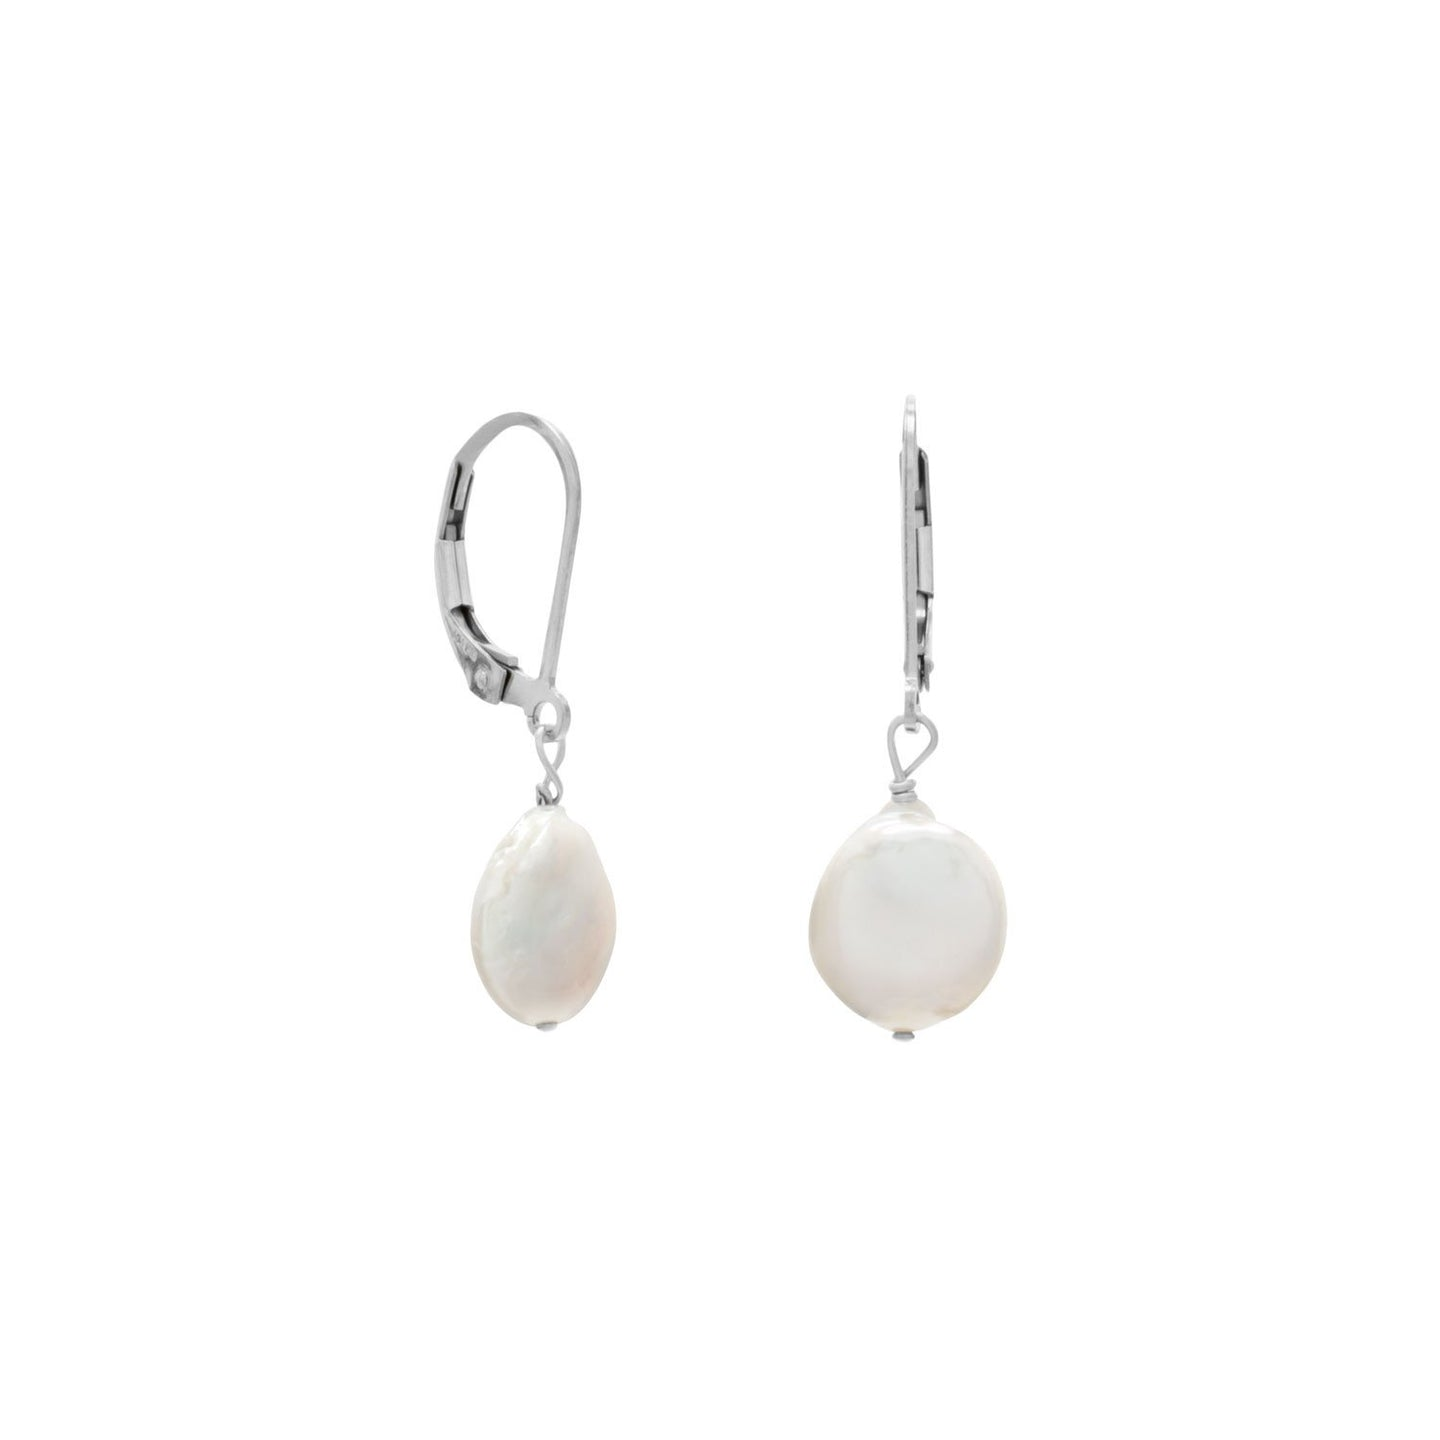 Cultured Freshwater Coin Pearl Earrings - the-southern-magnolia-too